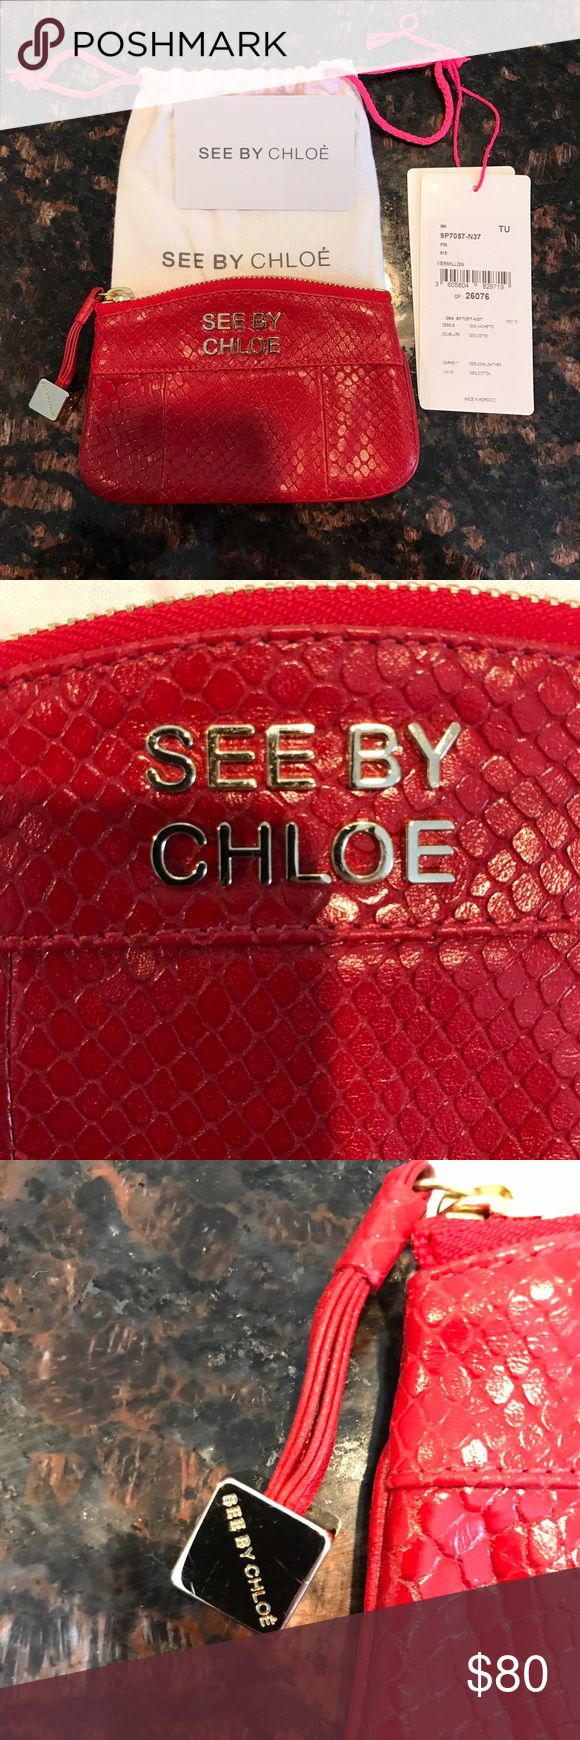 "See by Chloe wallet Beautiful Red leather, snake print, See by Chloe wallet. 6""w x 4""h NWT. Comes with tags and dust bag. See by Chloe Bags Wallets"